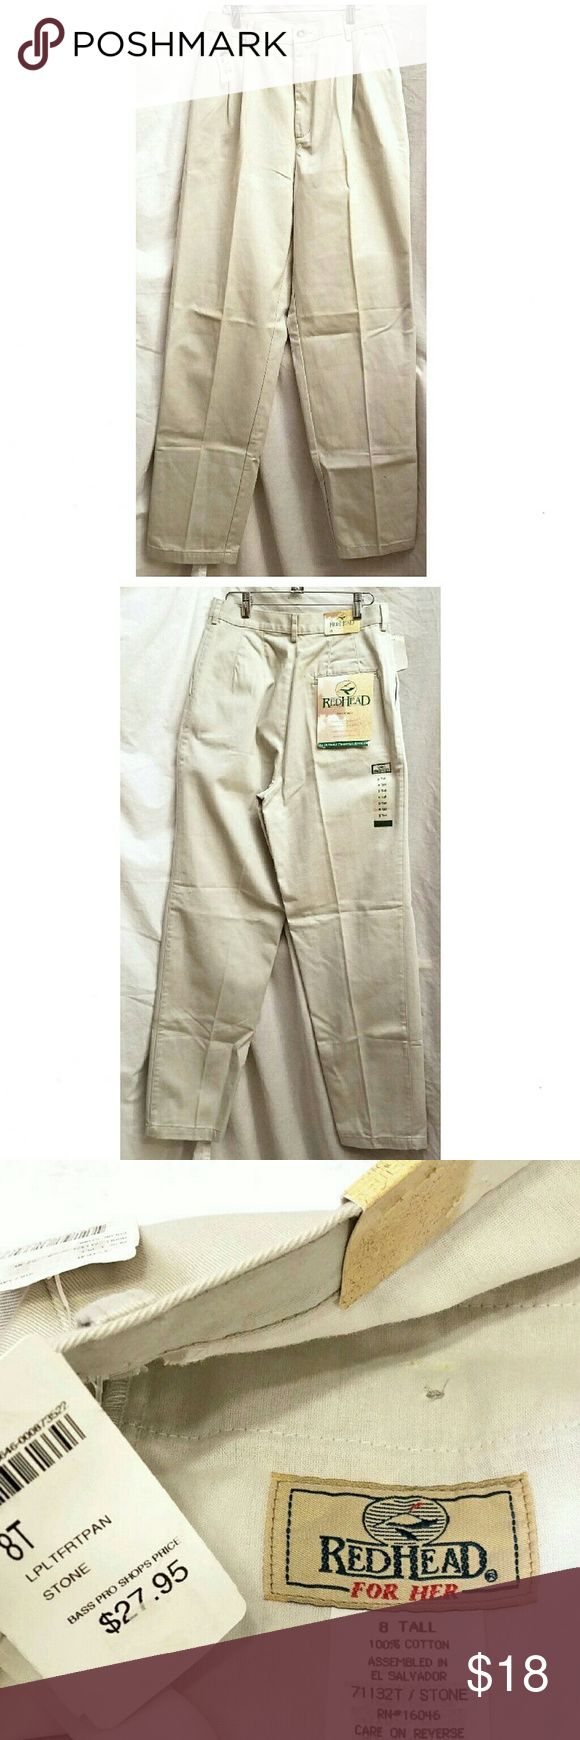 "Redhead Khaki Pants Size 8 Tall NWT Stone Color Made in El Salvador by Redhead Size: 8 Tall 100% cotton Machine wash and dry Pleated front Retail $27.95  Measurements are approximate and un-stretched  Length 45"" Inseam 33""' Rise 13"" Waist 28"" Hips 44"" Redhead Pants Trousers"